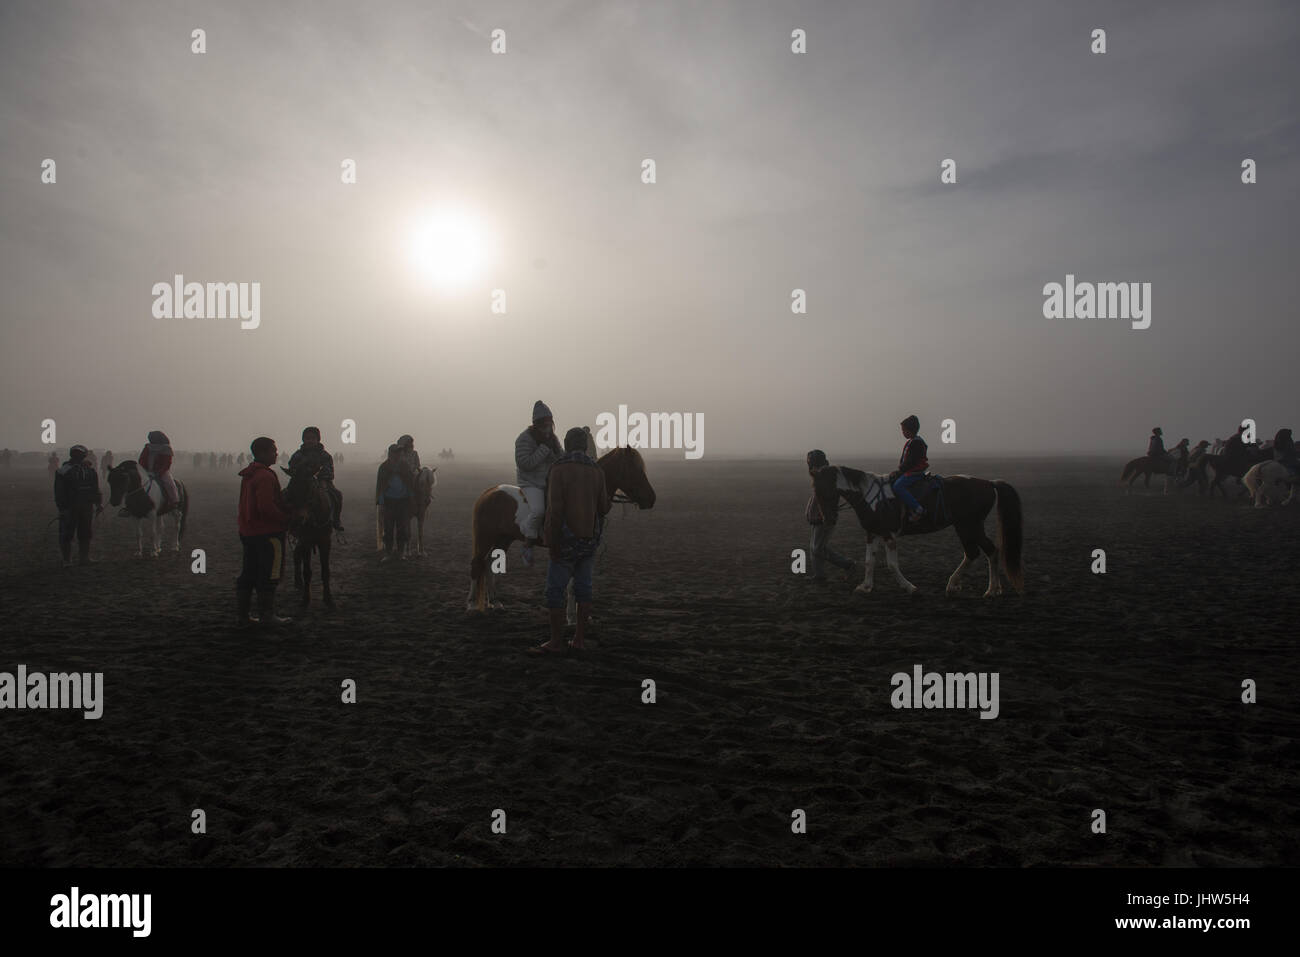 Indonesians horse riding in sea of sand in Mount Bromo East Java Indonesia. - Stock Image